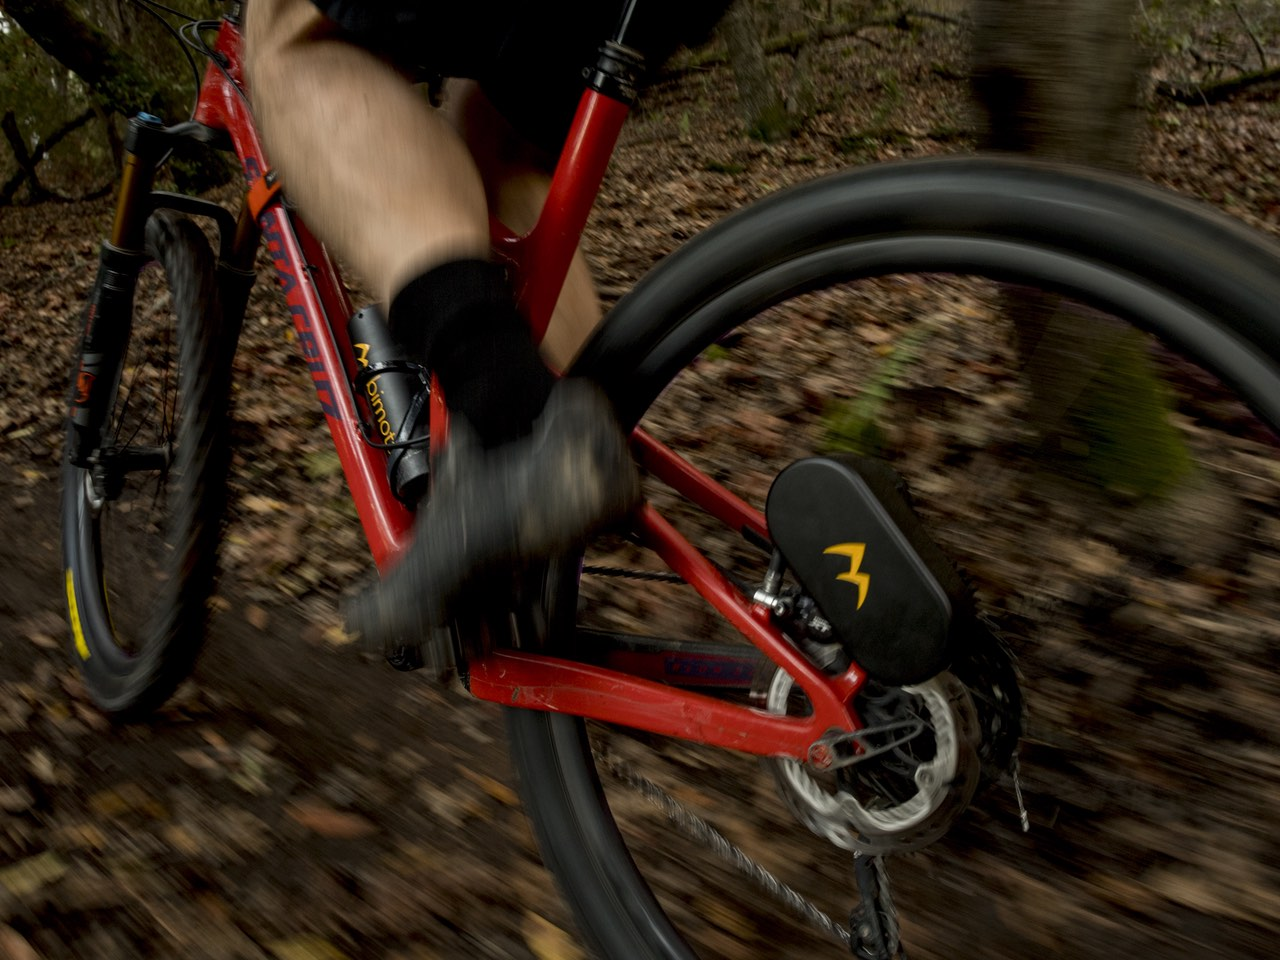 The Bimotal Elevate removable ebike system